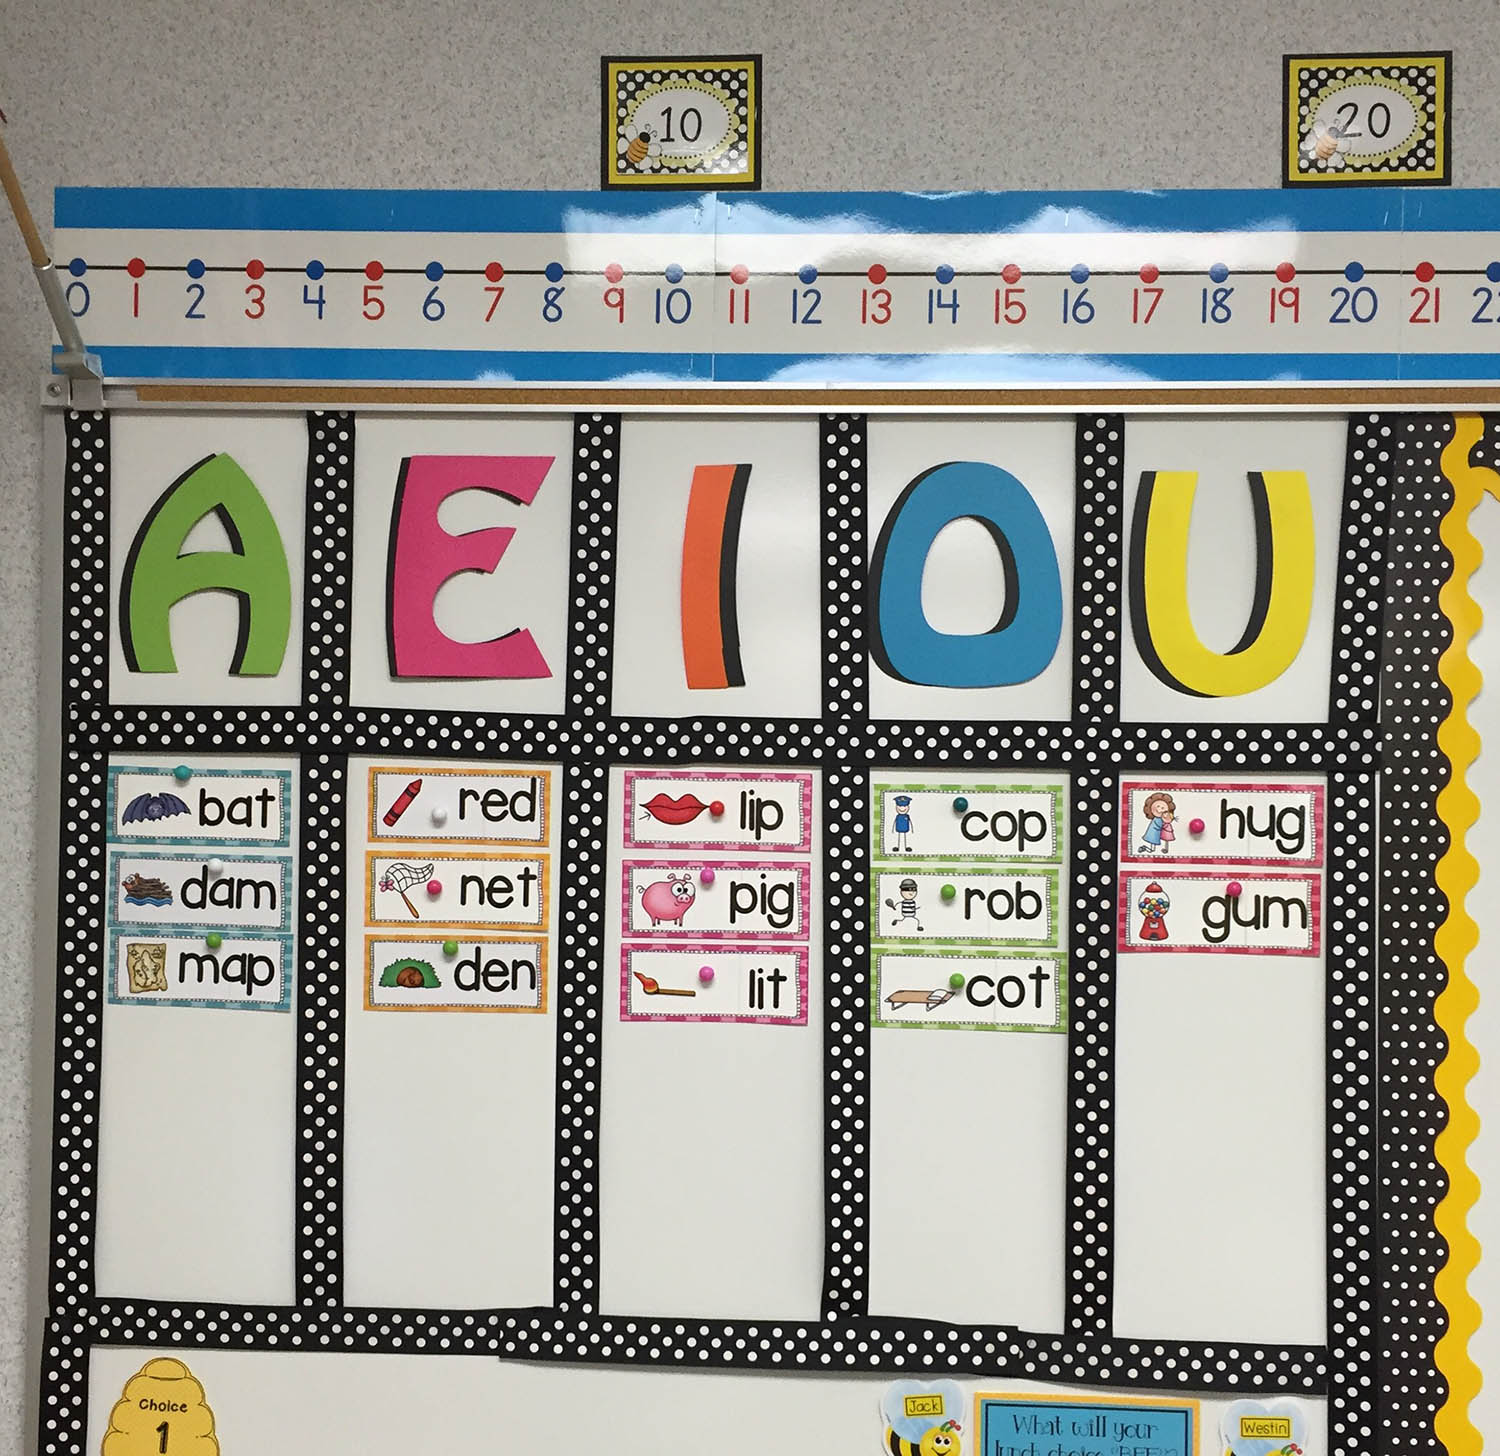 chunk charts or word family charts build phonemic awareness a key to success in both reading and writing word families can help your students crack